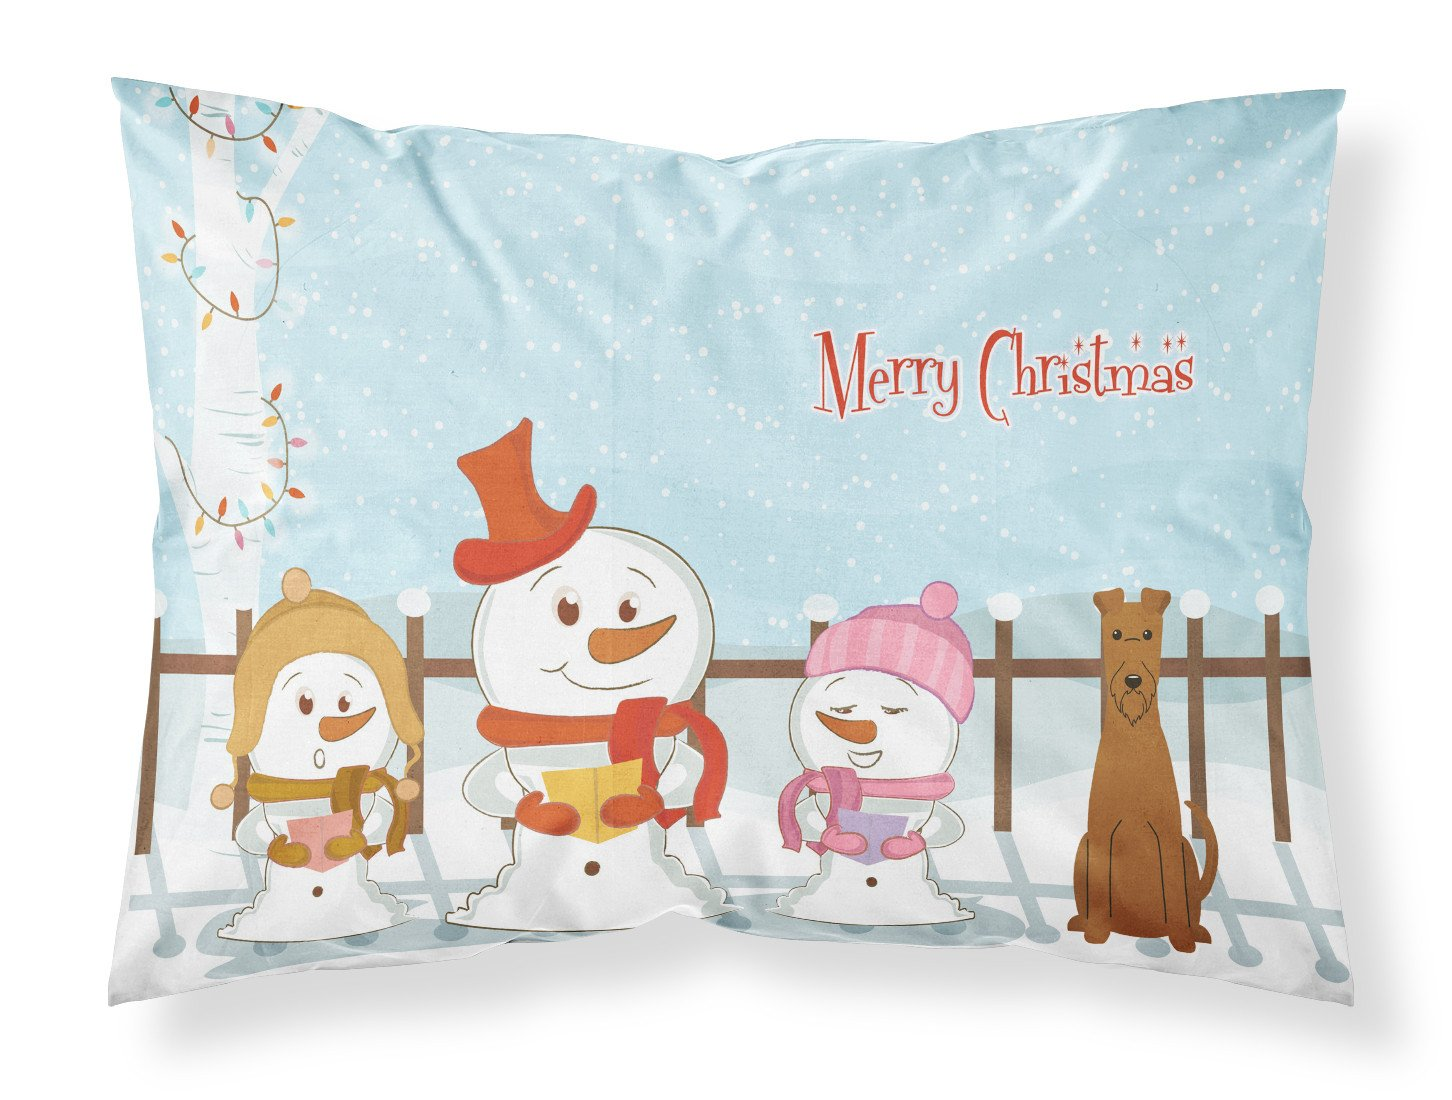 Merry Christmas Carolers Irish Terrier Fabric Standard Pillowcase BB2393PILLOWCASE by Caroline's Treasures